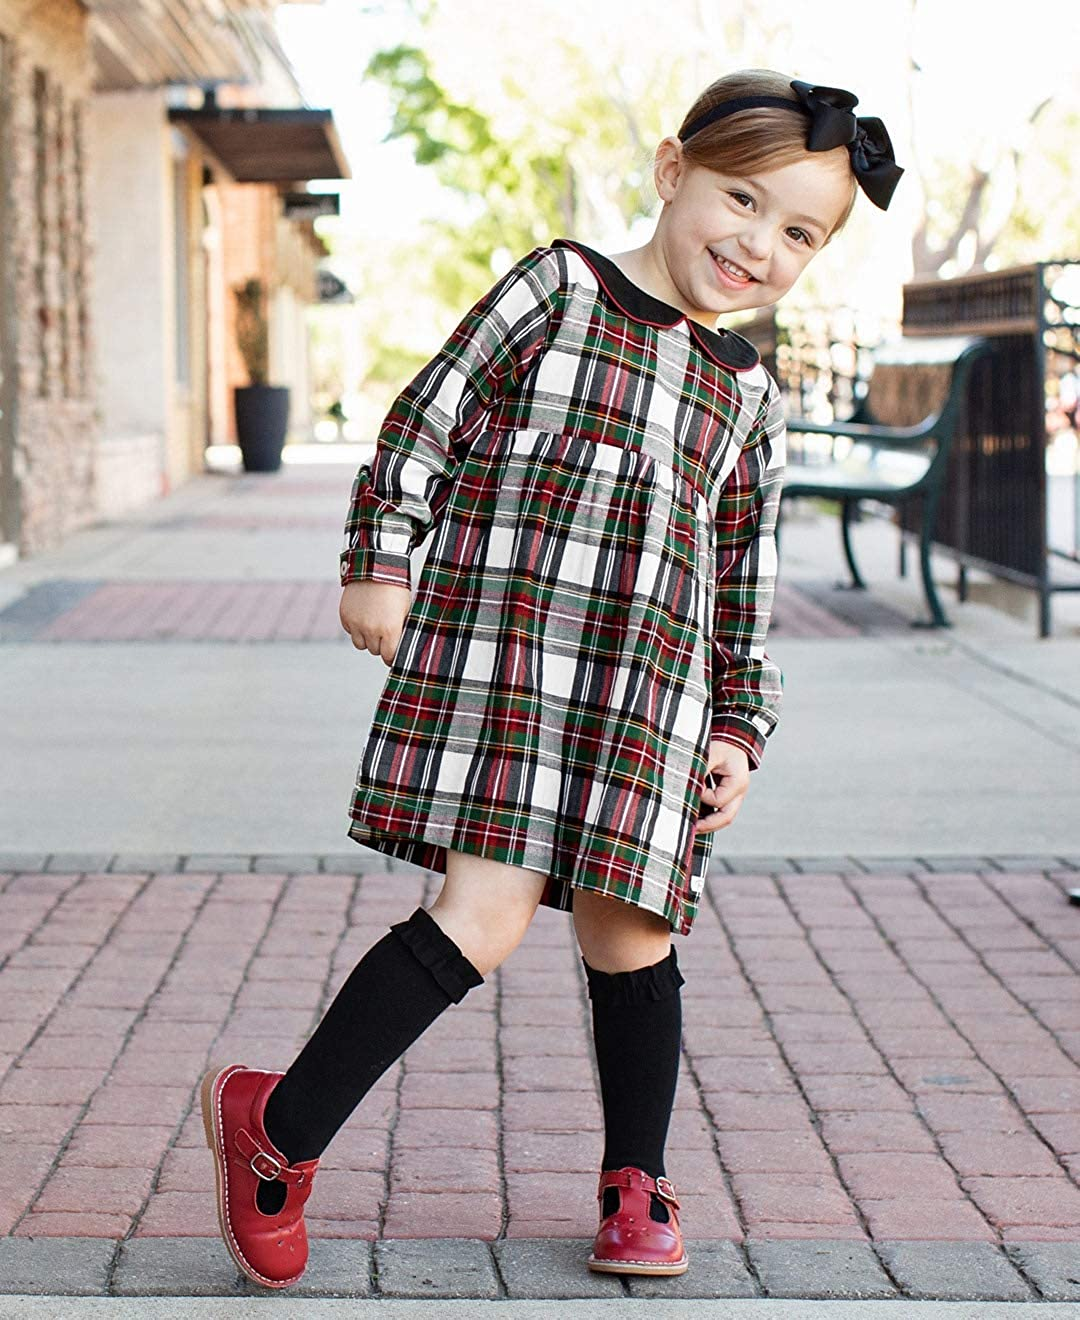 1940s Children's Clothing: Girls, Boys, Baby, Toddler RuffleButts Little Girls Holiday Traditional Plaid Peter Pan Collar Dress Long Sleeve $38.99 AT vintagedancer.com